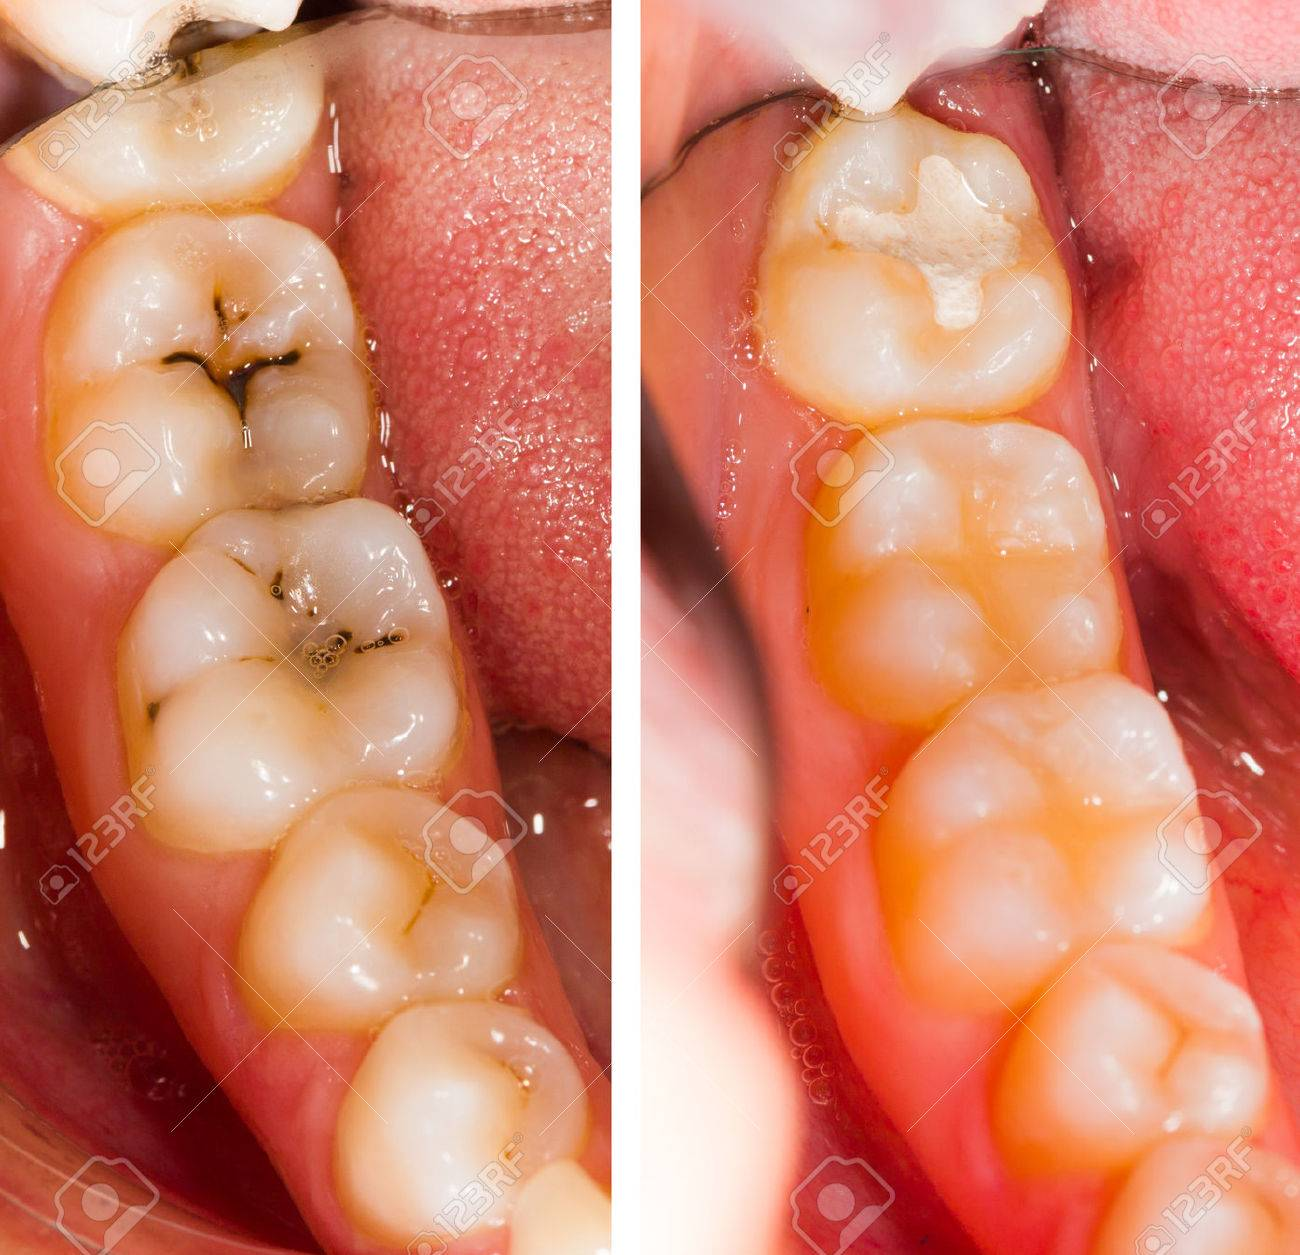 Before and after dental treatment - beforeafter series. Stock Photo - 33275878